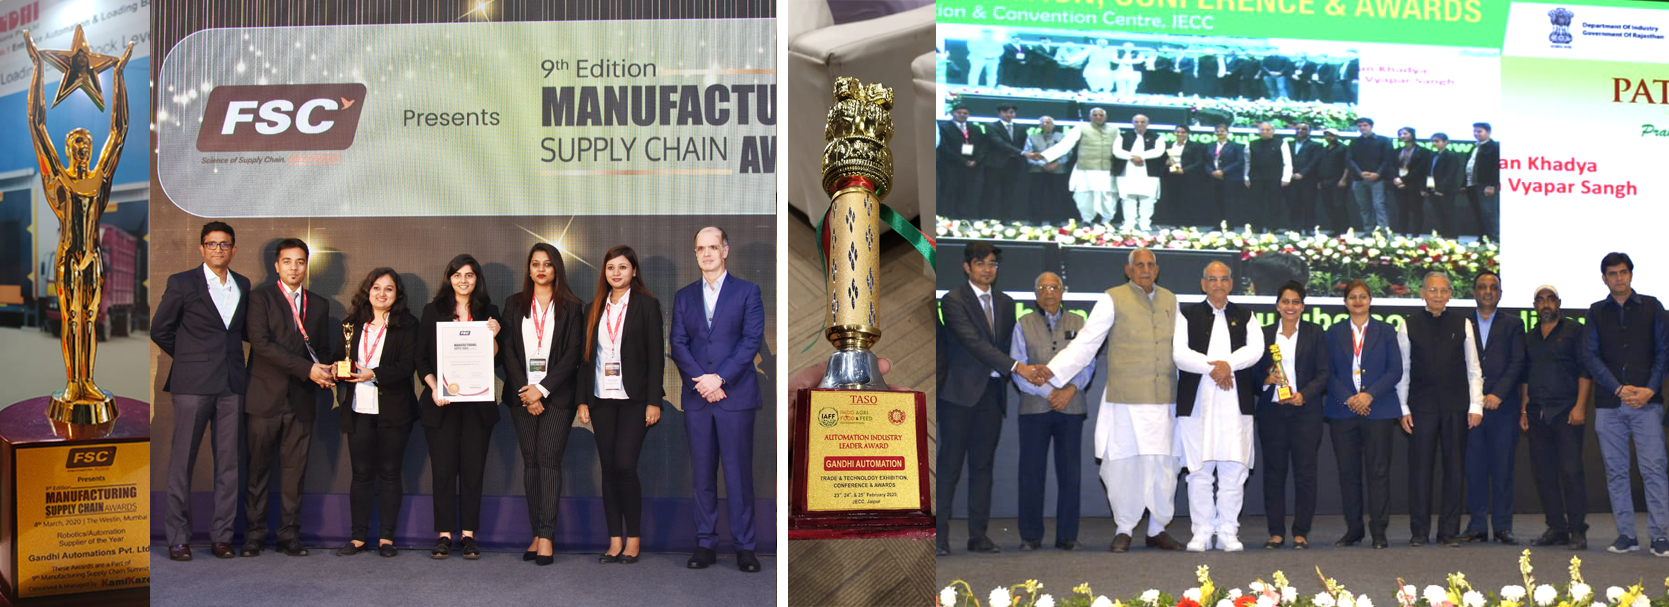 Automation Industry Leader 2020 and Automation Supplier of the Year 2020